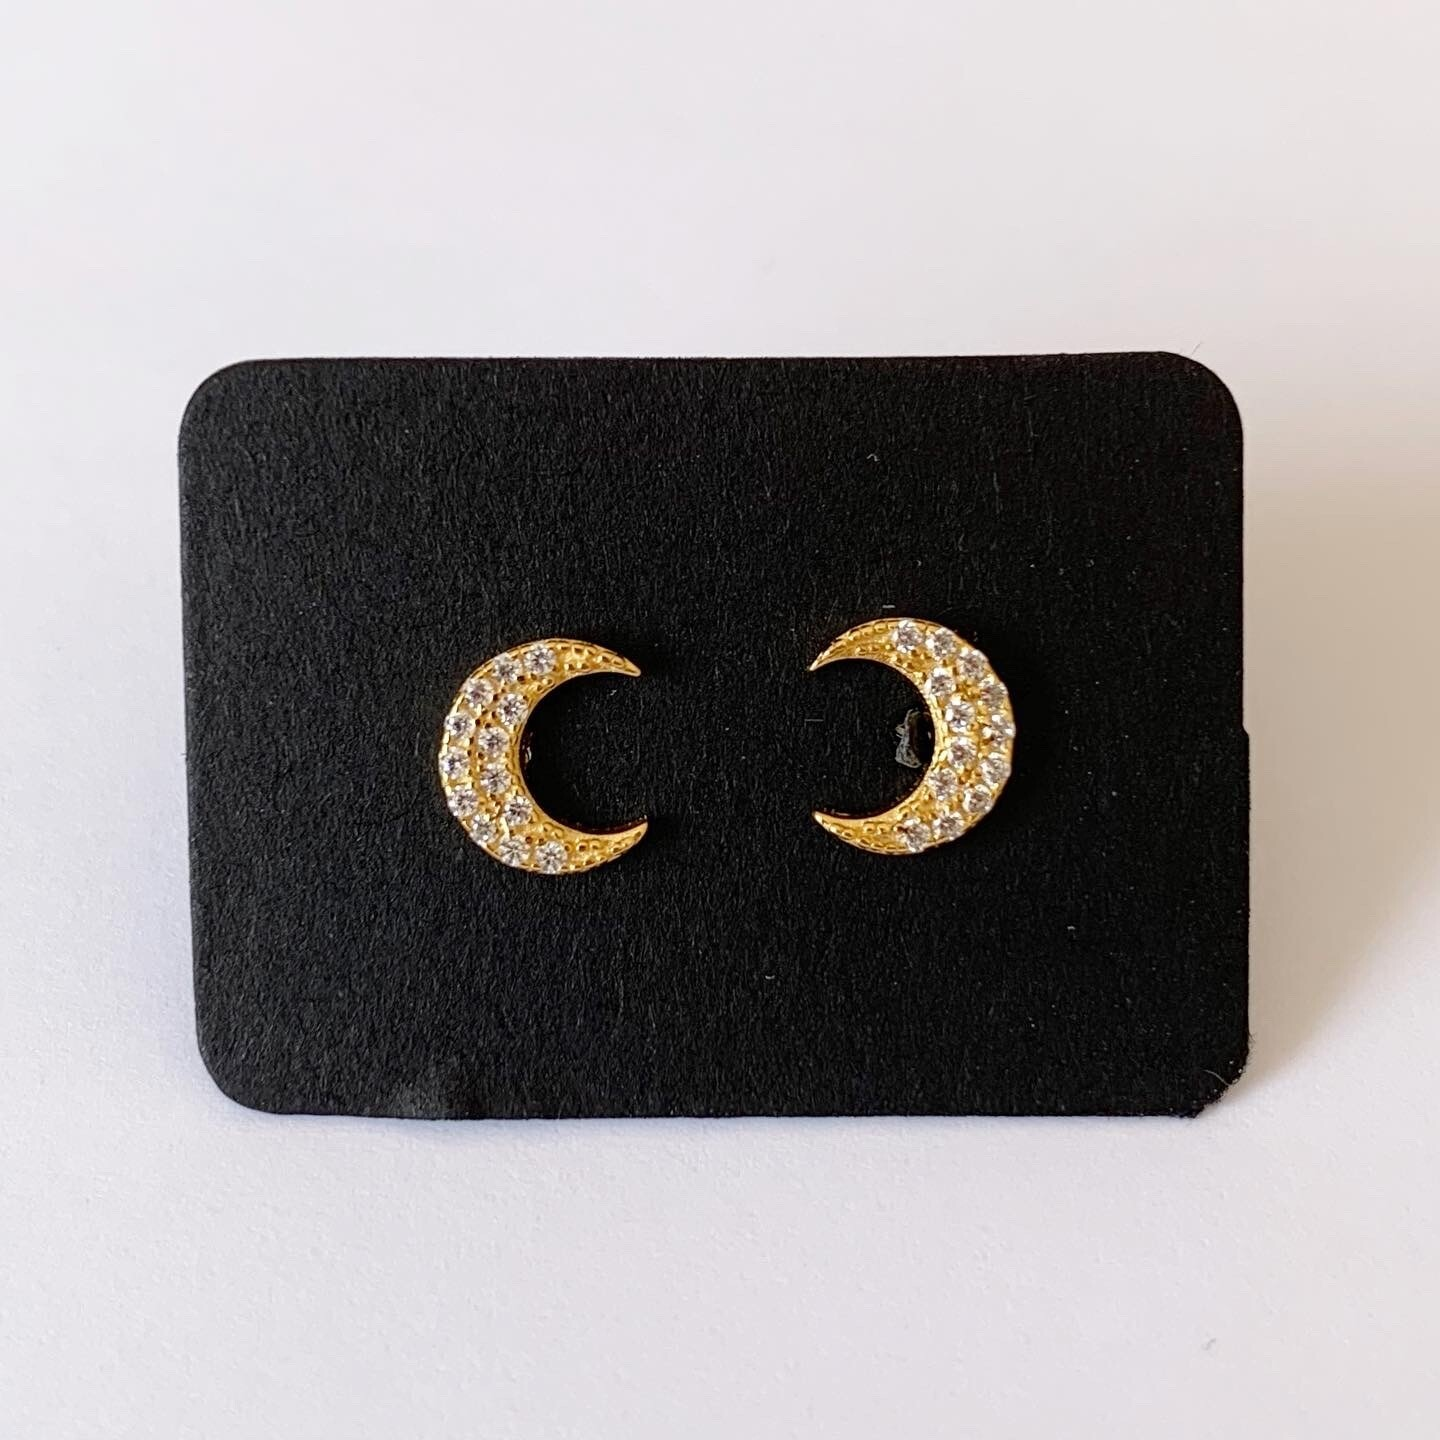 Shiny moon knopjes gold plated